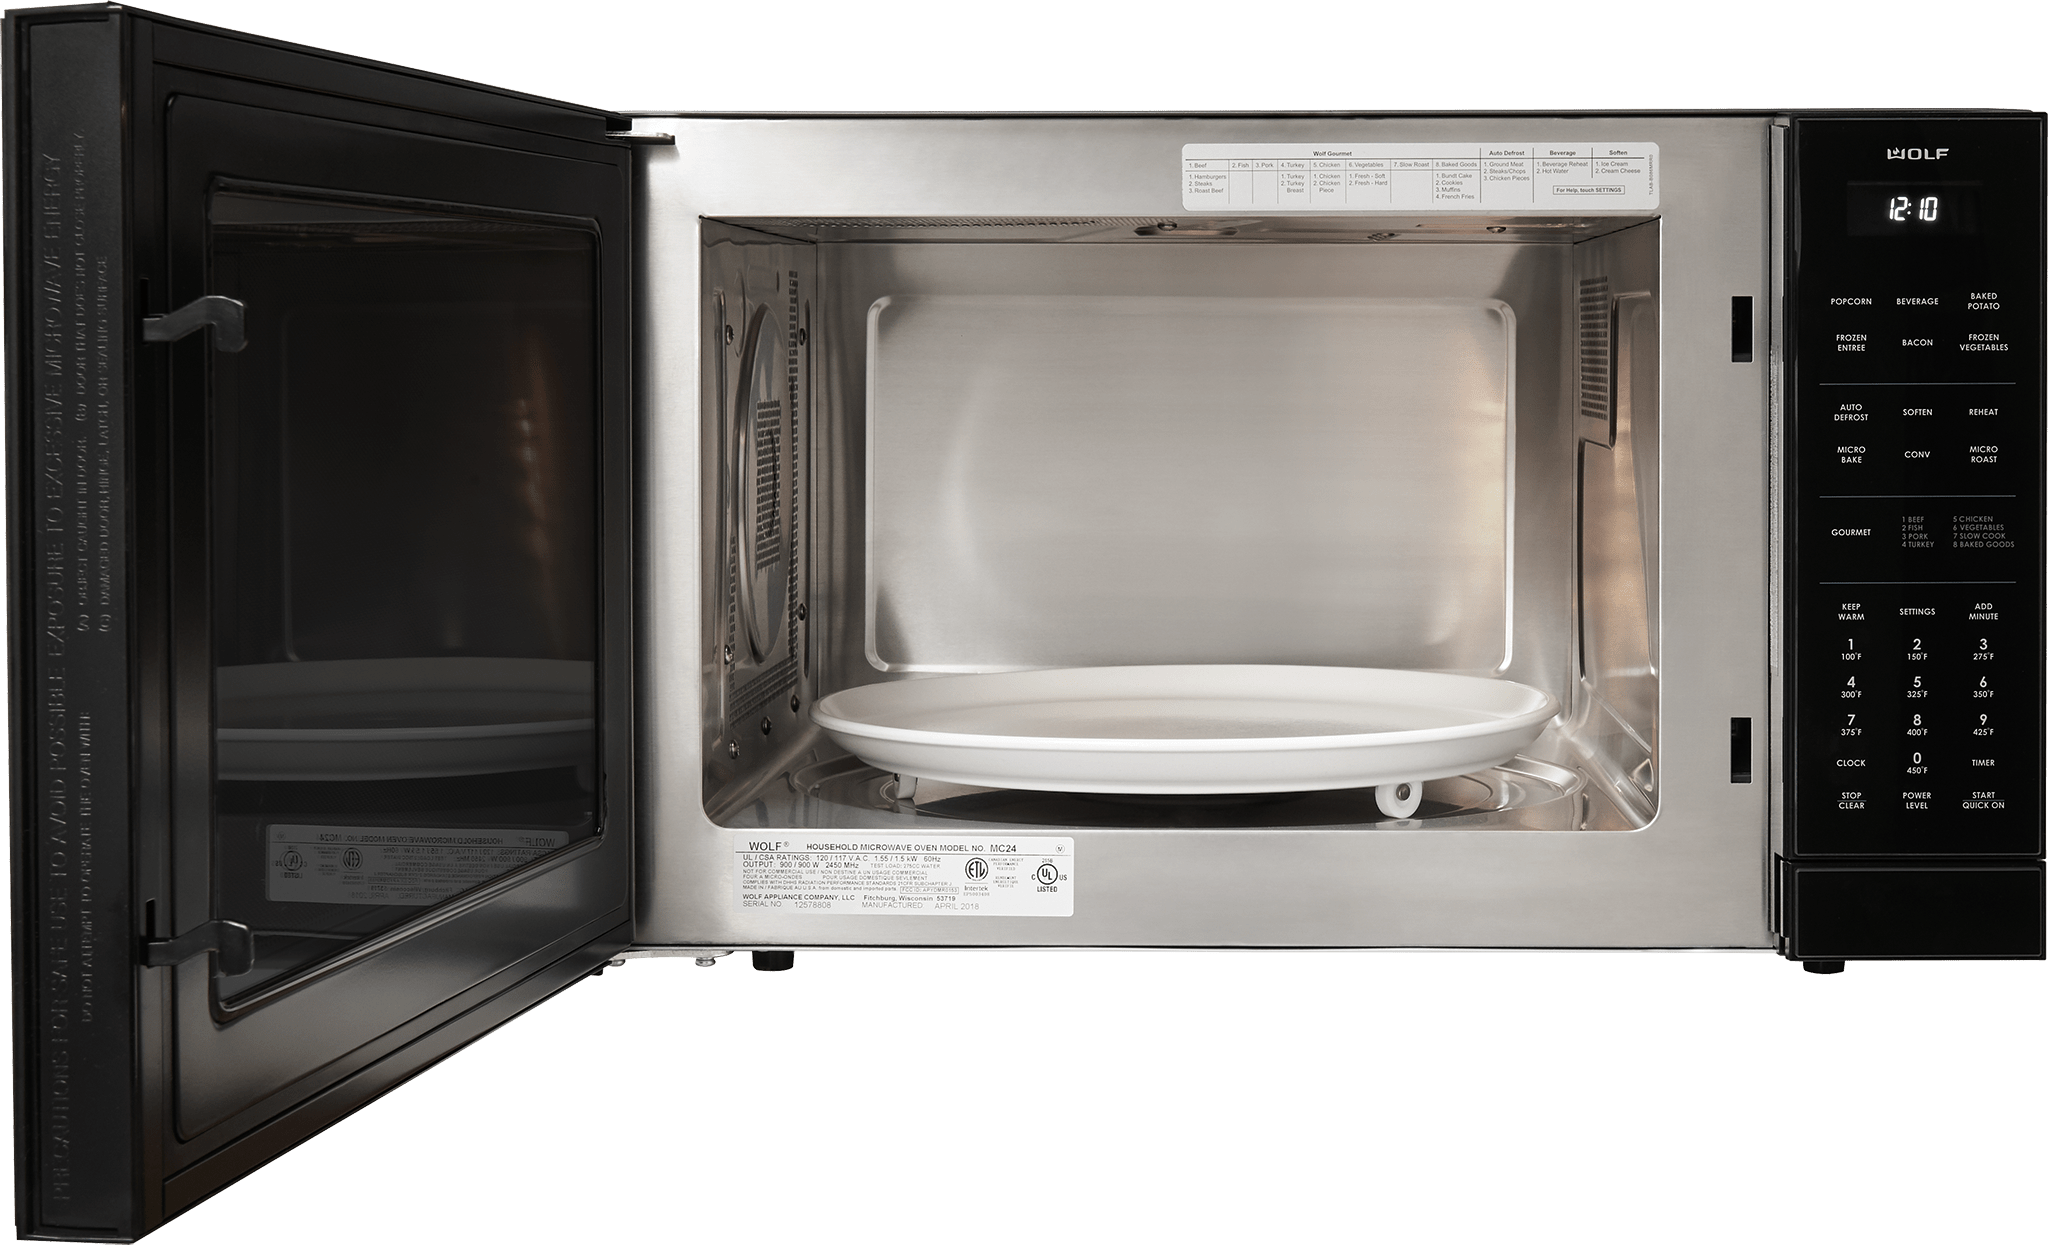 wolf mc24 24 convection microwave oven